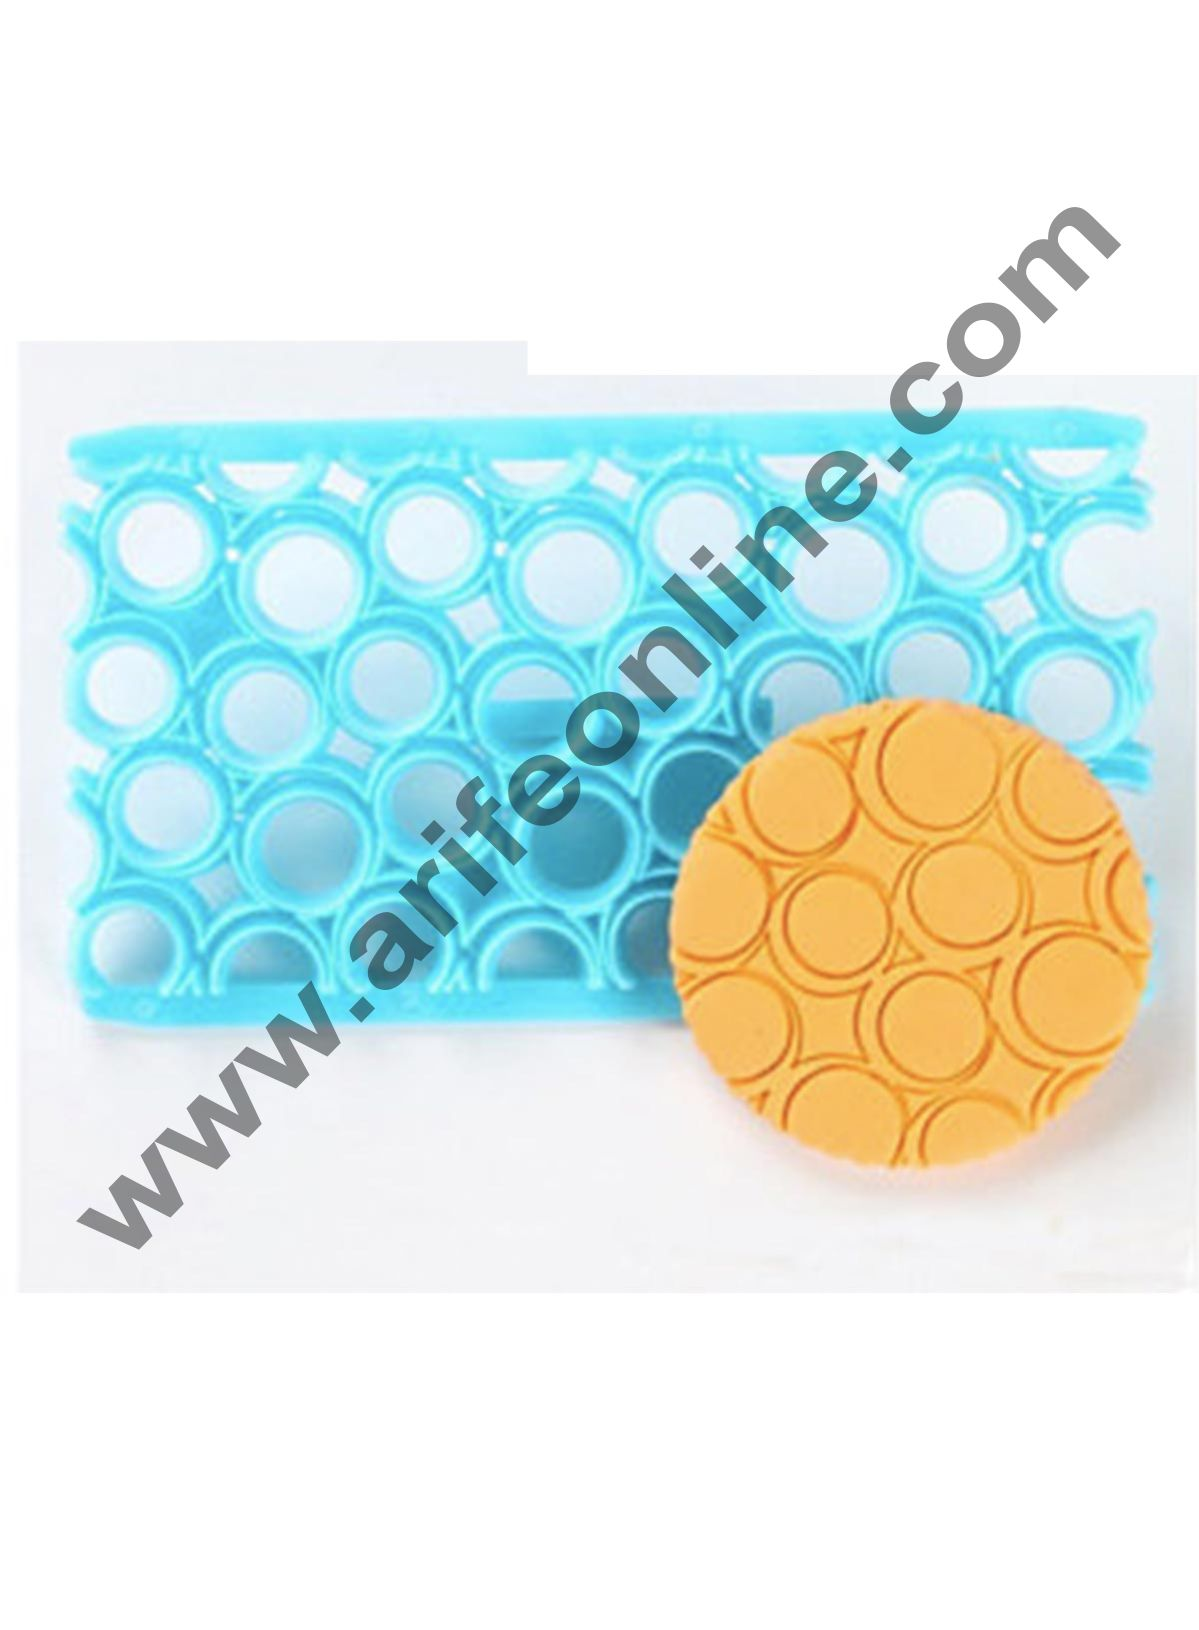 Cake Decor Plastic Round Circle Quilt Mold Embosser Fondant Round Circle Biscuit Mold Cookie Cutter For Cupcake Decoration Cake Decorating Tools